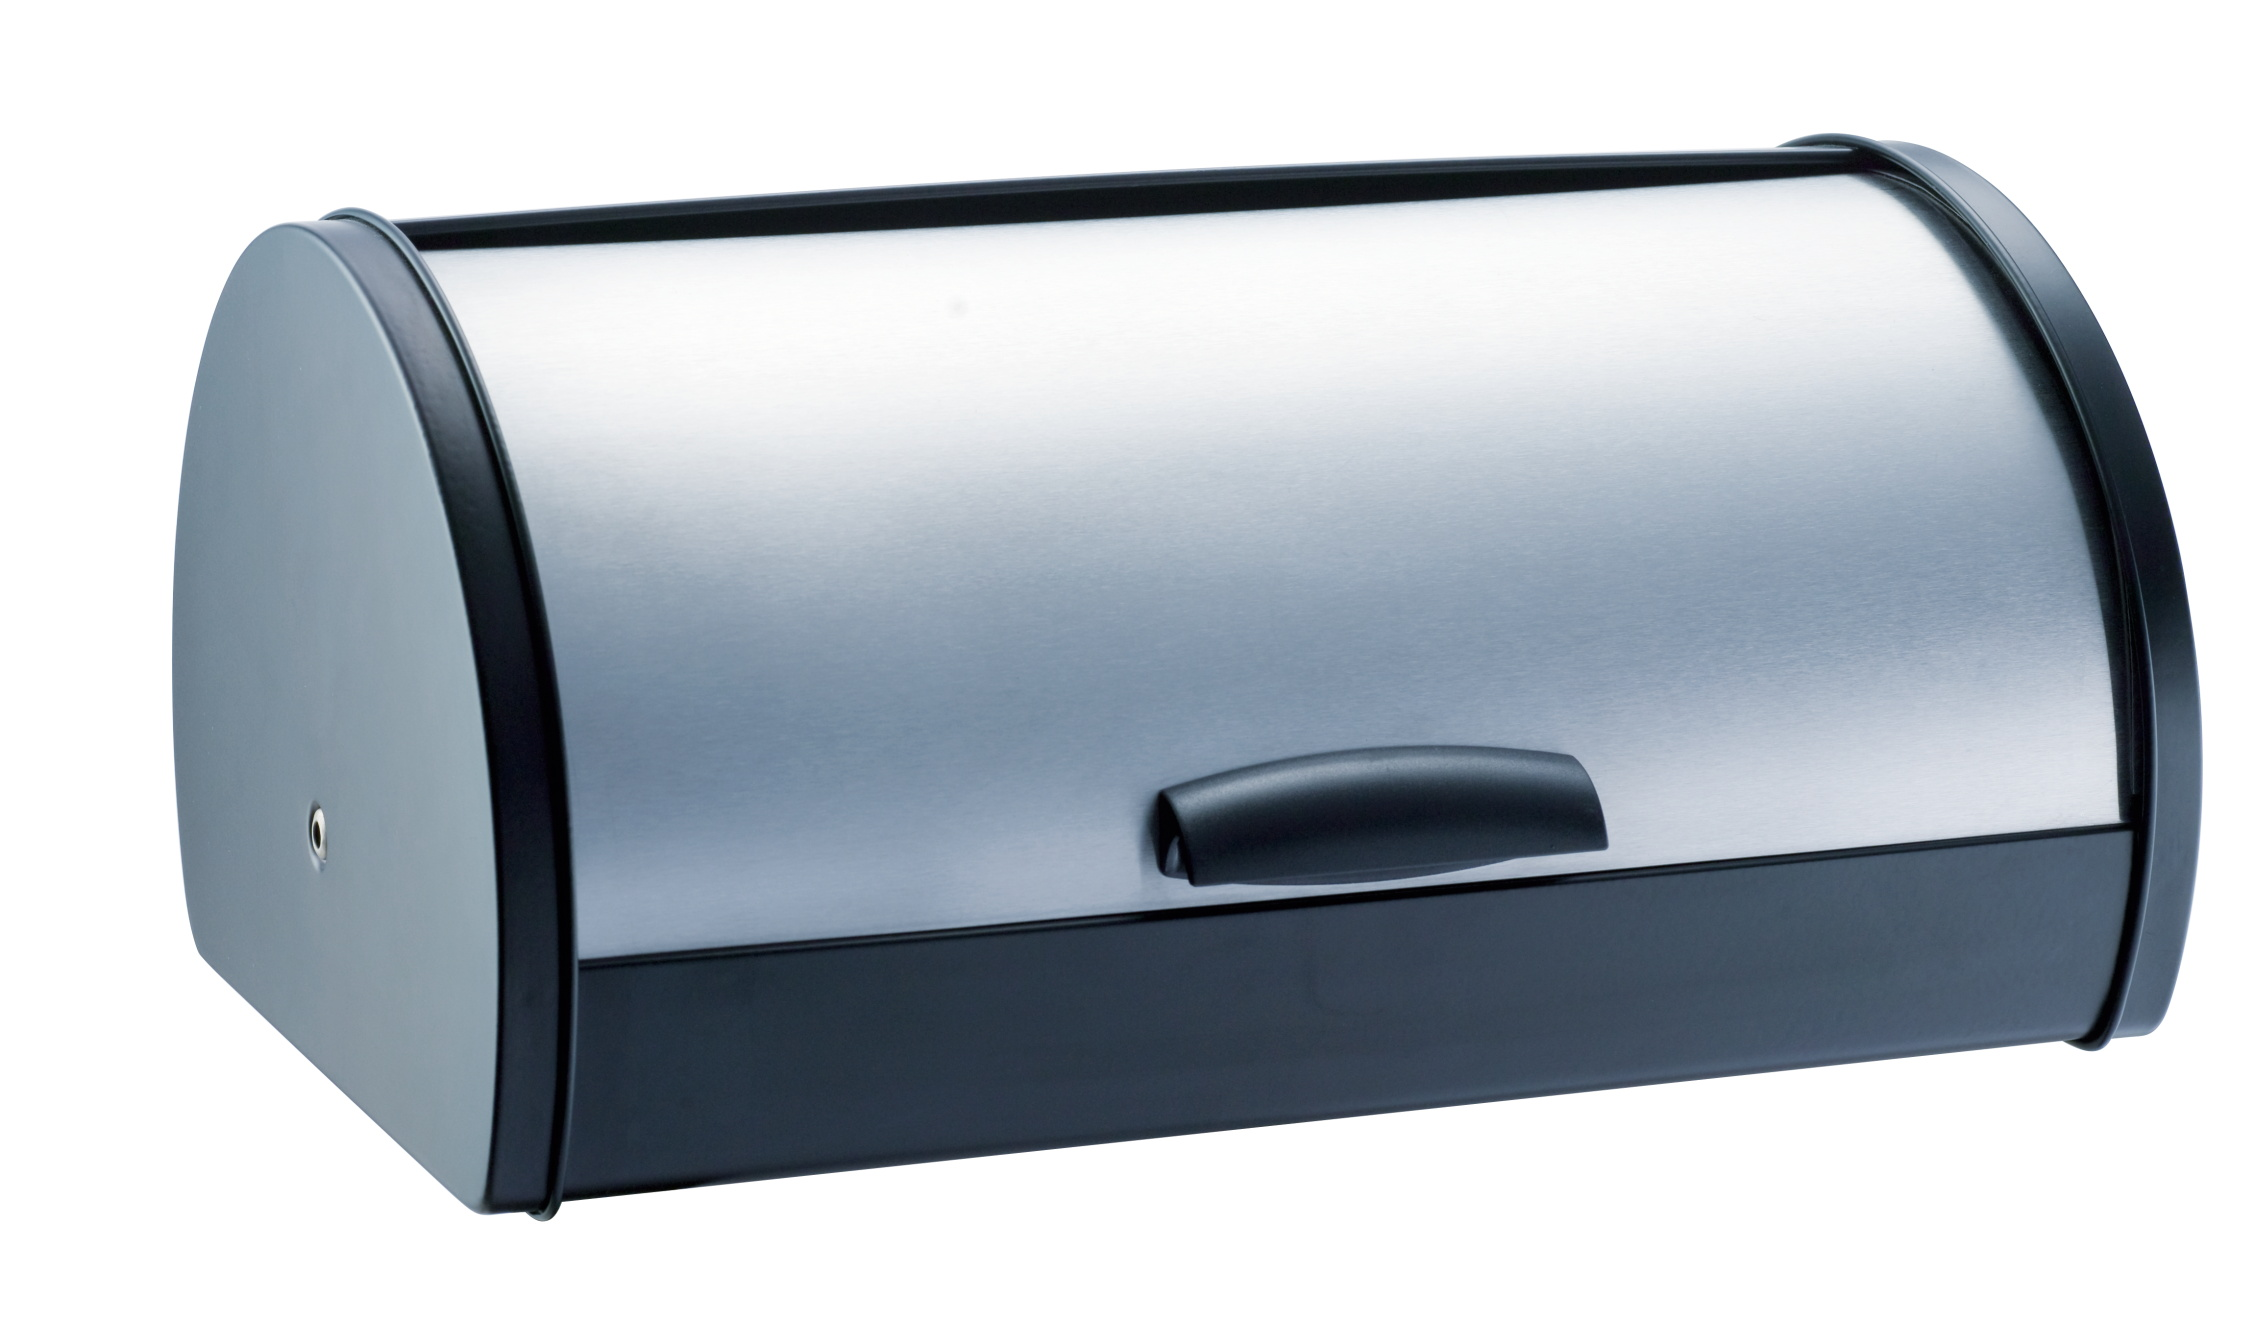 Stainless Steel Bread Bin Storage Box, Roll up Lid (Stainless steel), Bread Bin, Bread Storage, Bread Holder